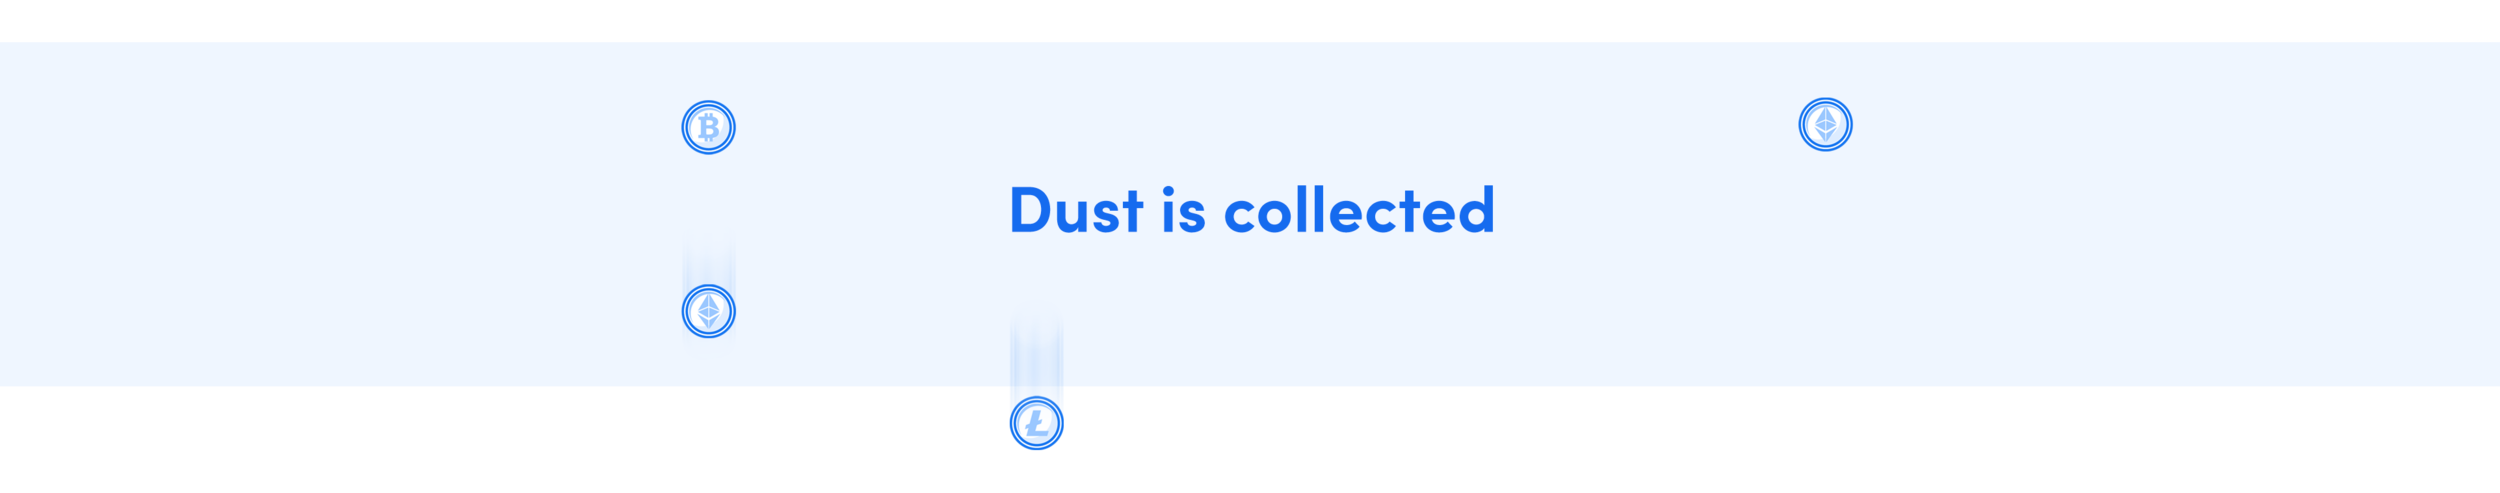 infographic_ecosystem_dust.png